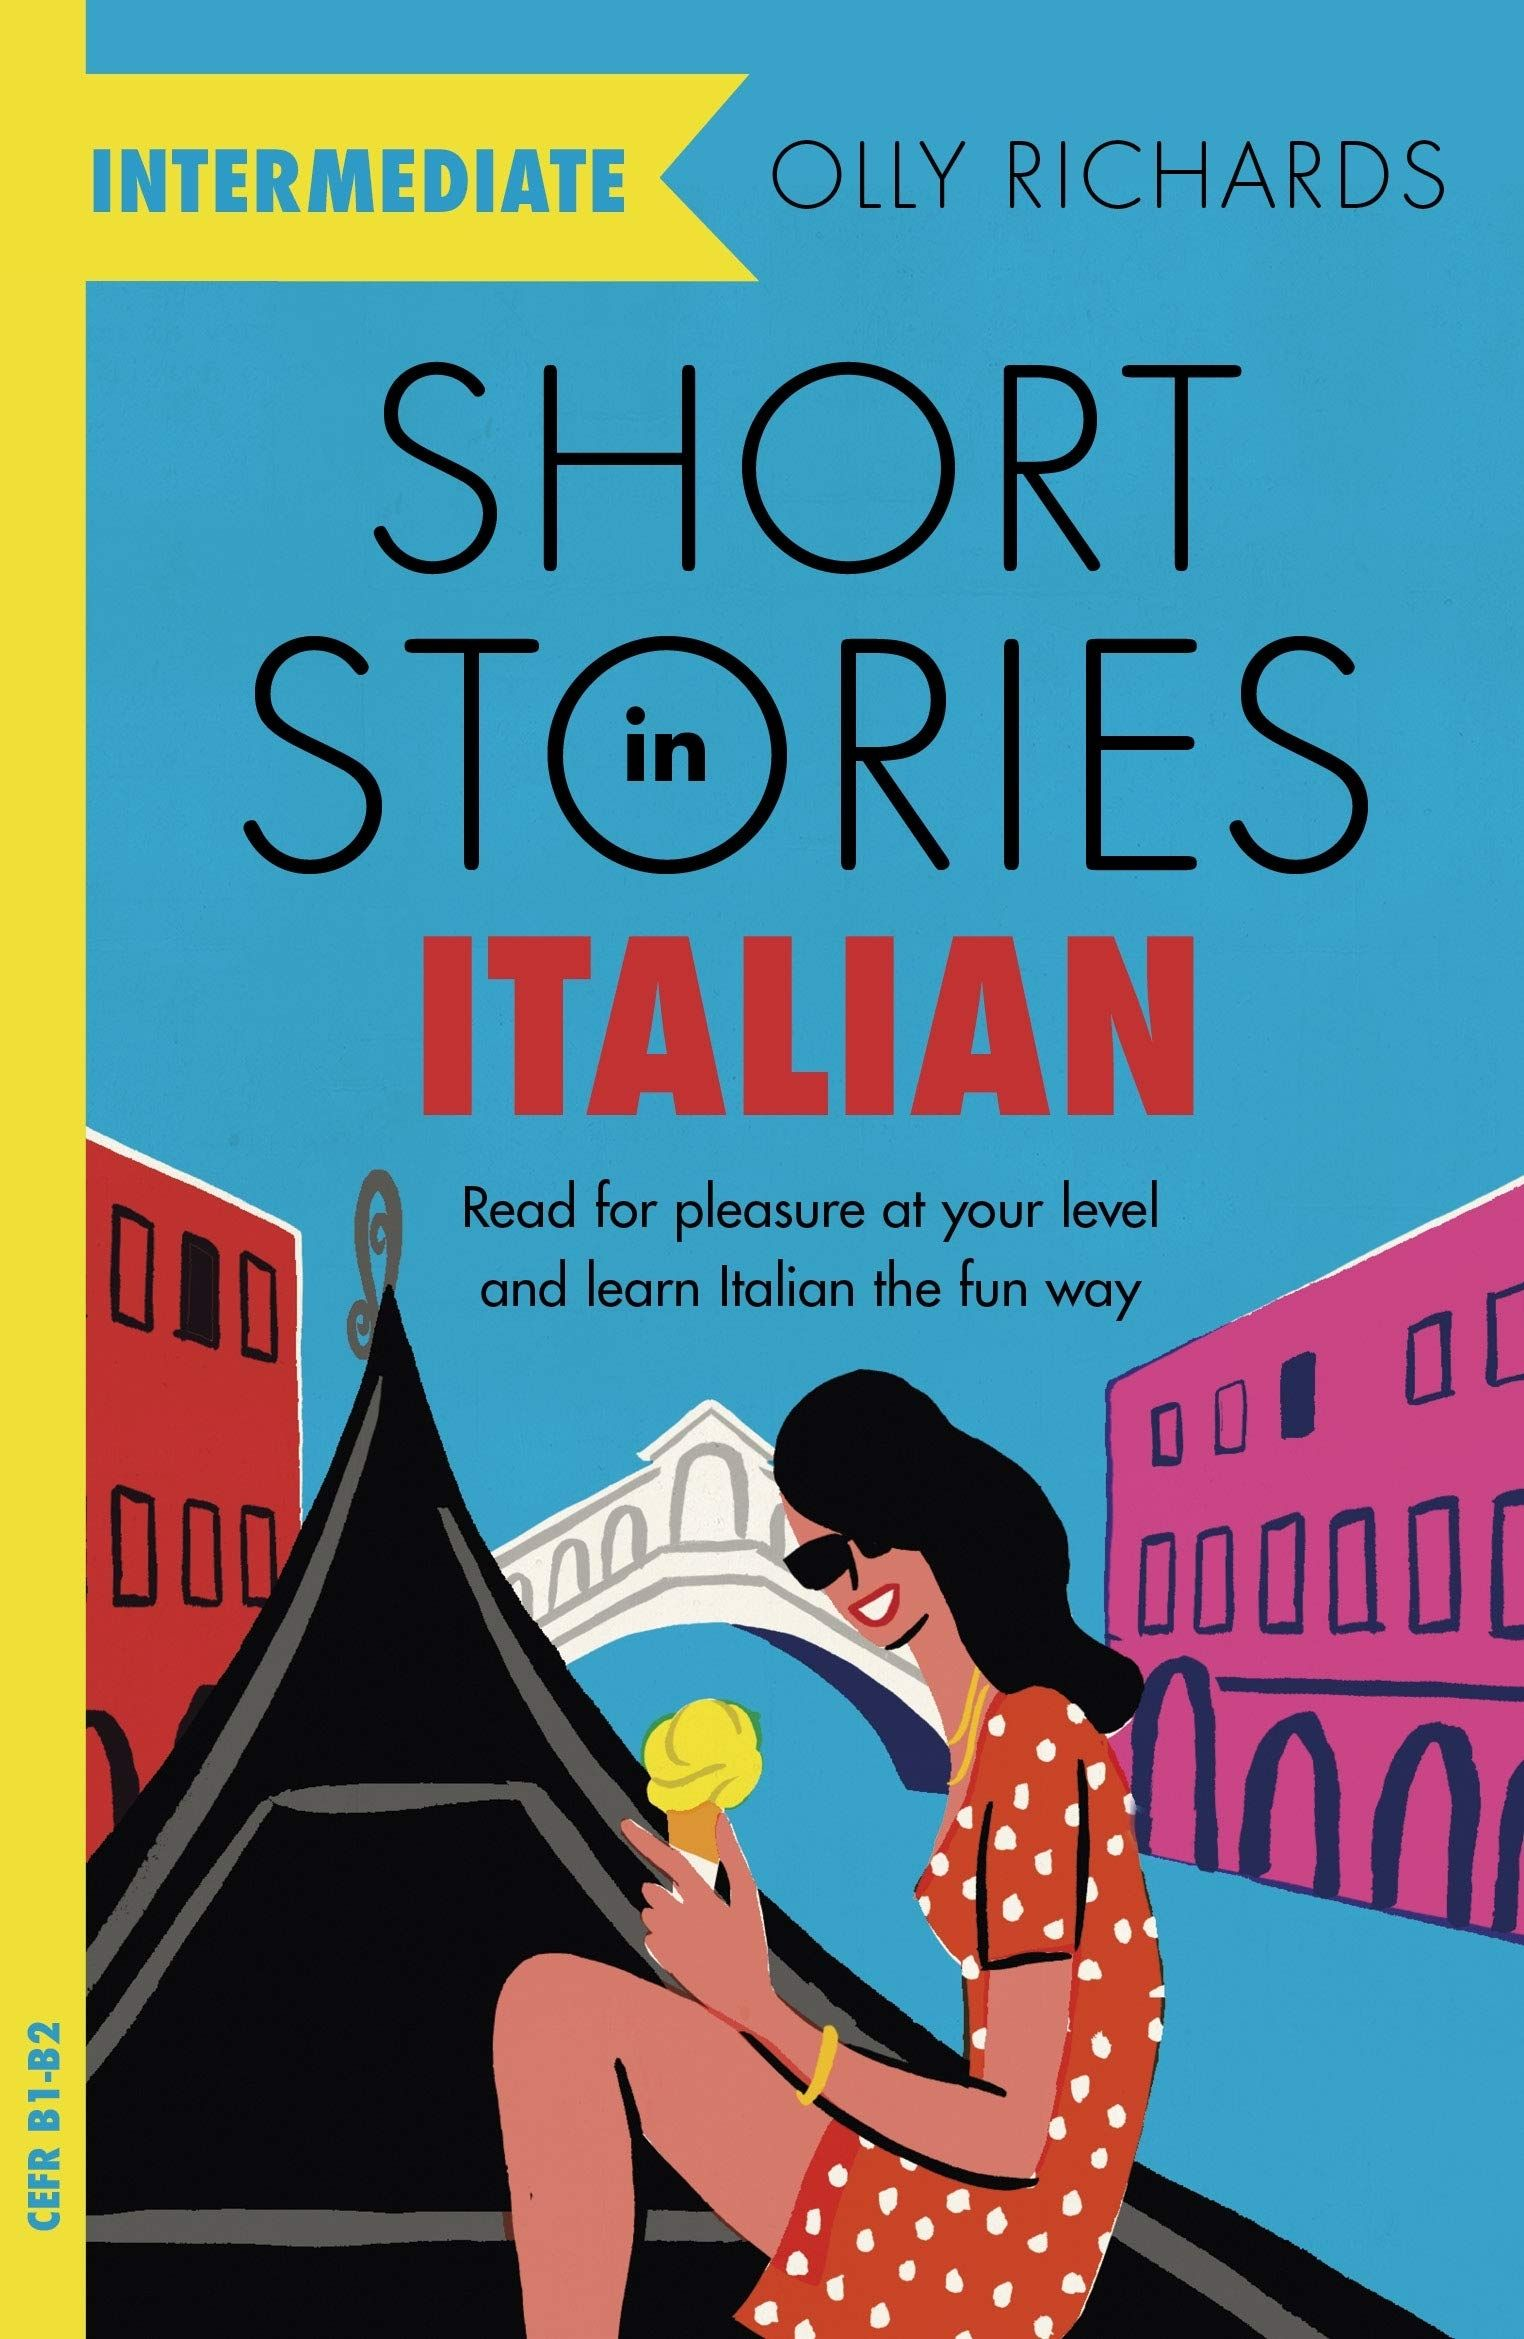 Short Stories in Italian for Intermediate Learners: Read for pleasure at your level, expand your vocabulary and learn Italian the fun way!